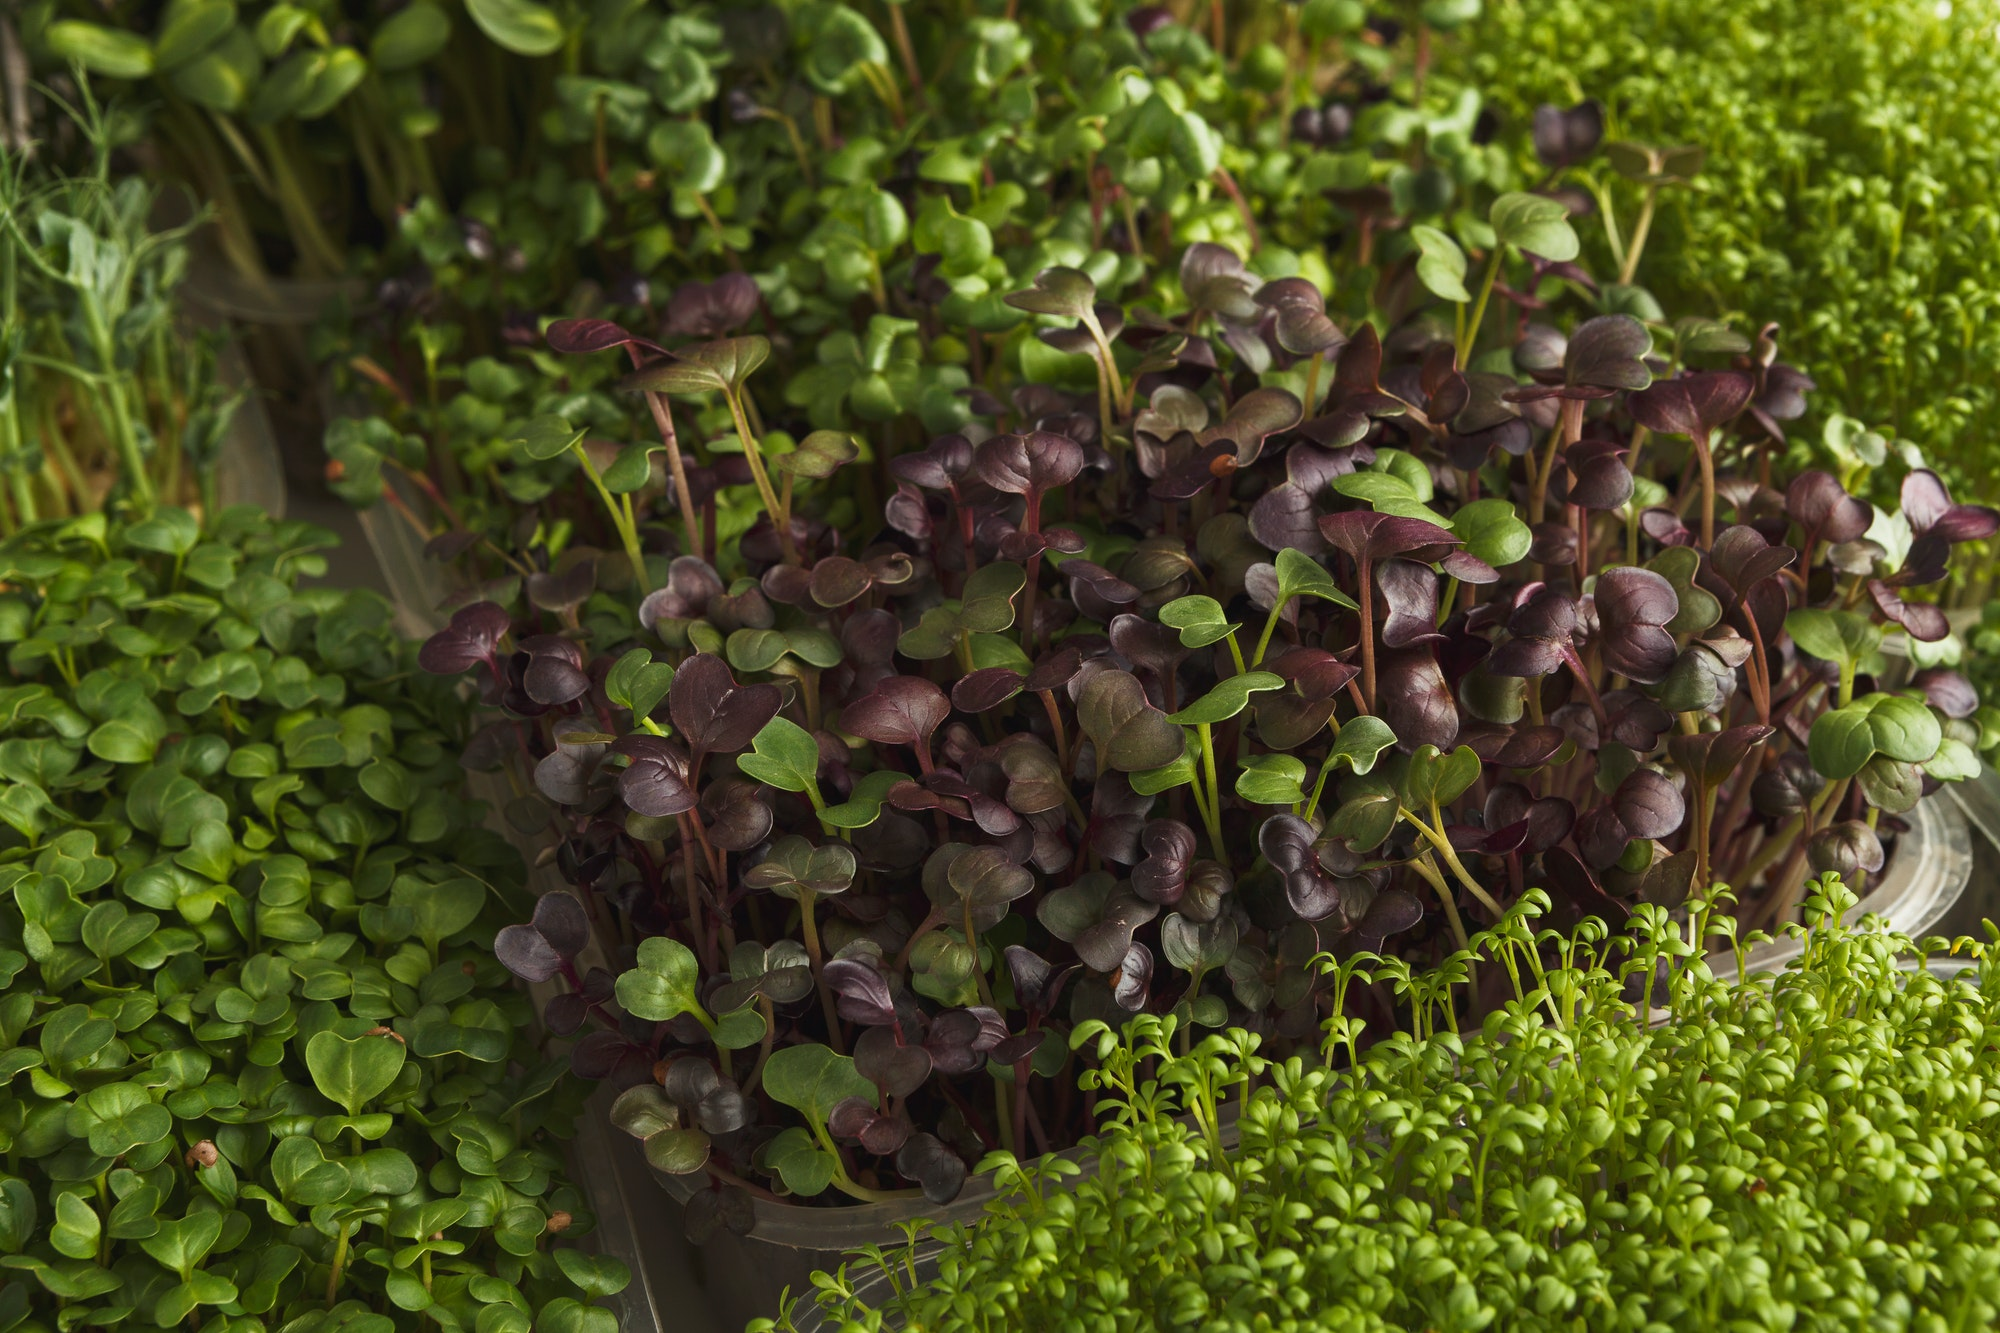 Indoor Growers World - Controlled Environment Agriculture (CEA) - Microgreens grown in an Indoor Grow Facility